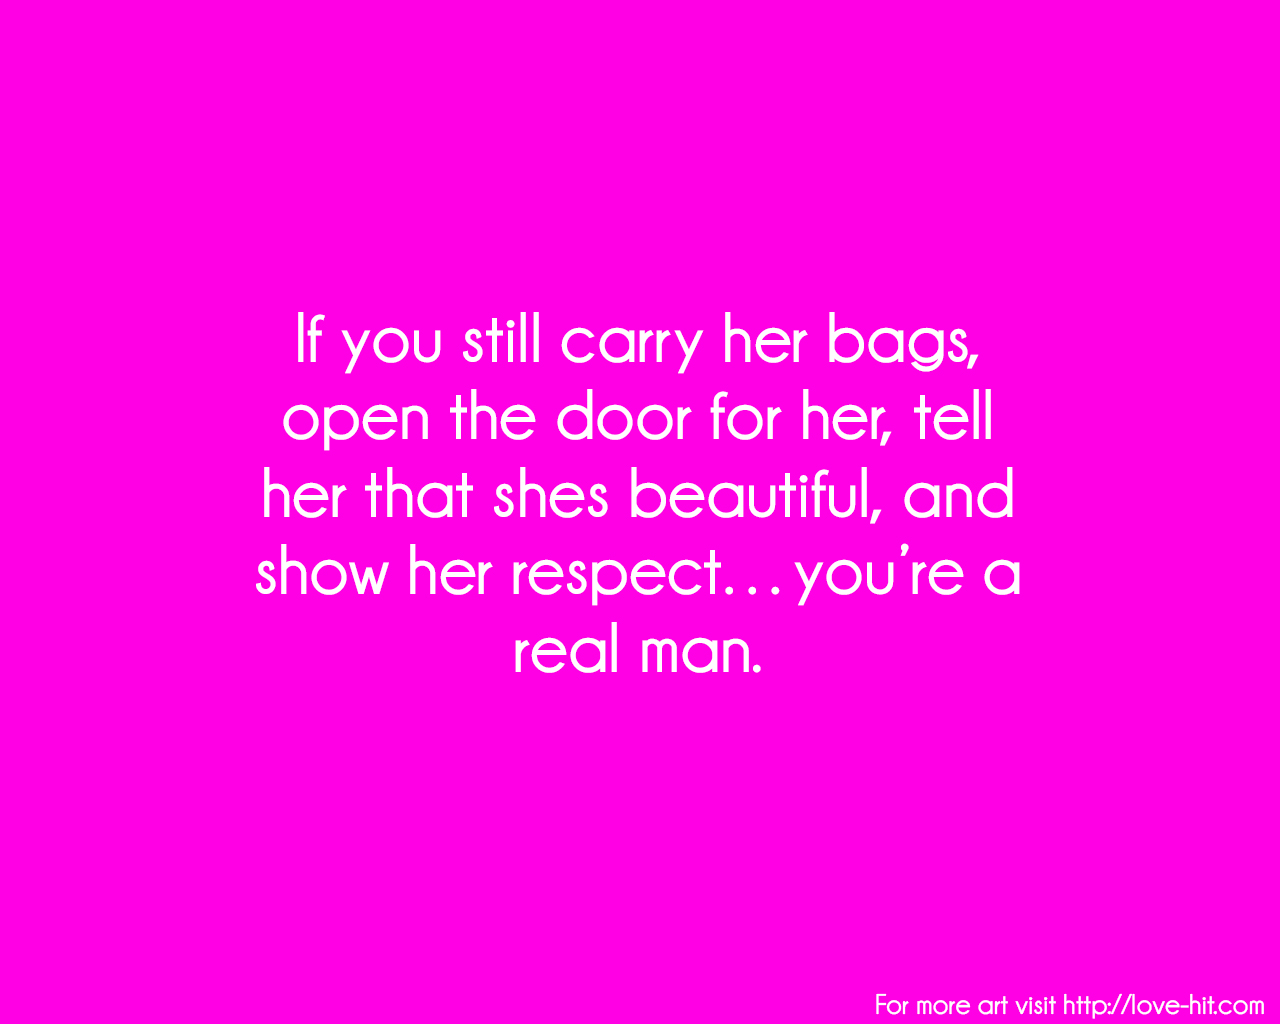 25+ Sweet Love Quotes For Her